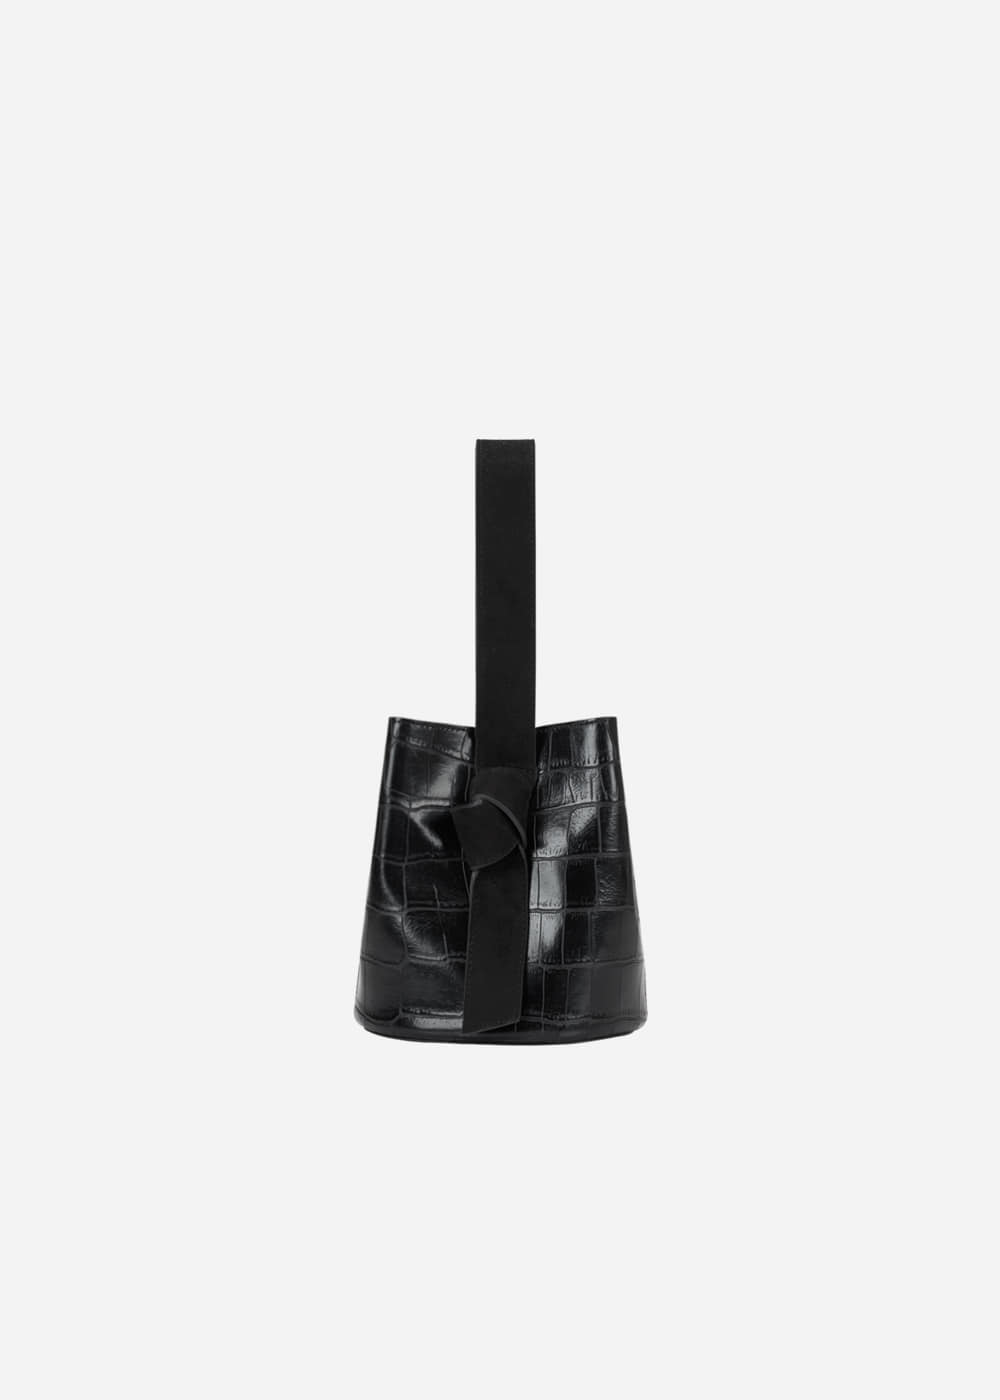 Micro Wani Knot Bucket Black Bean